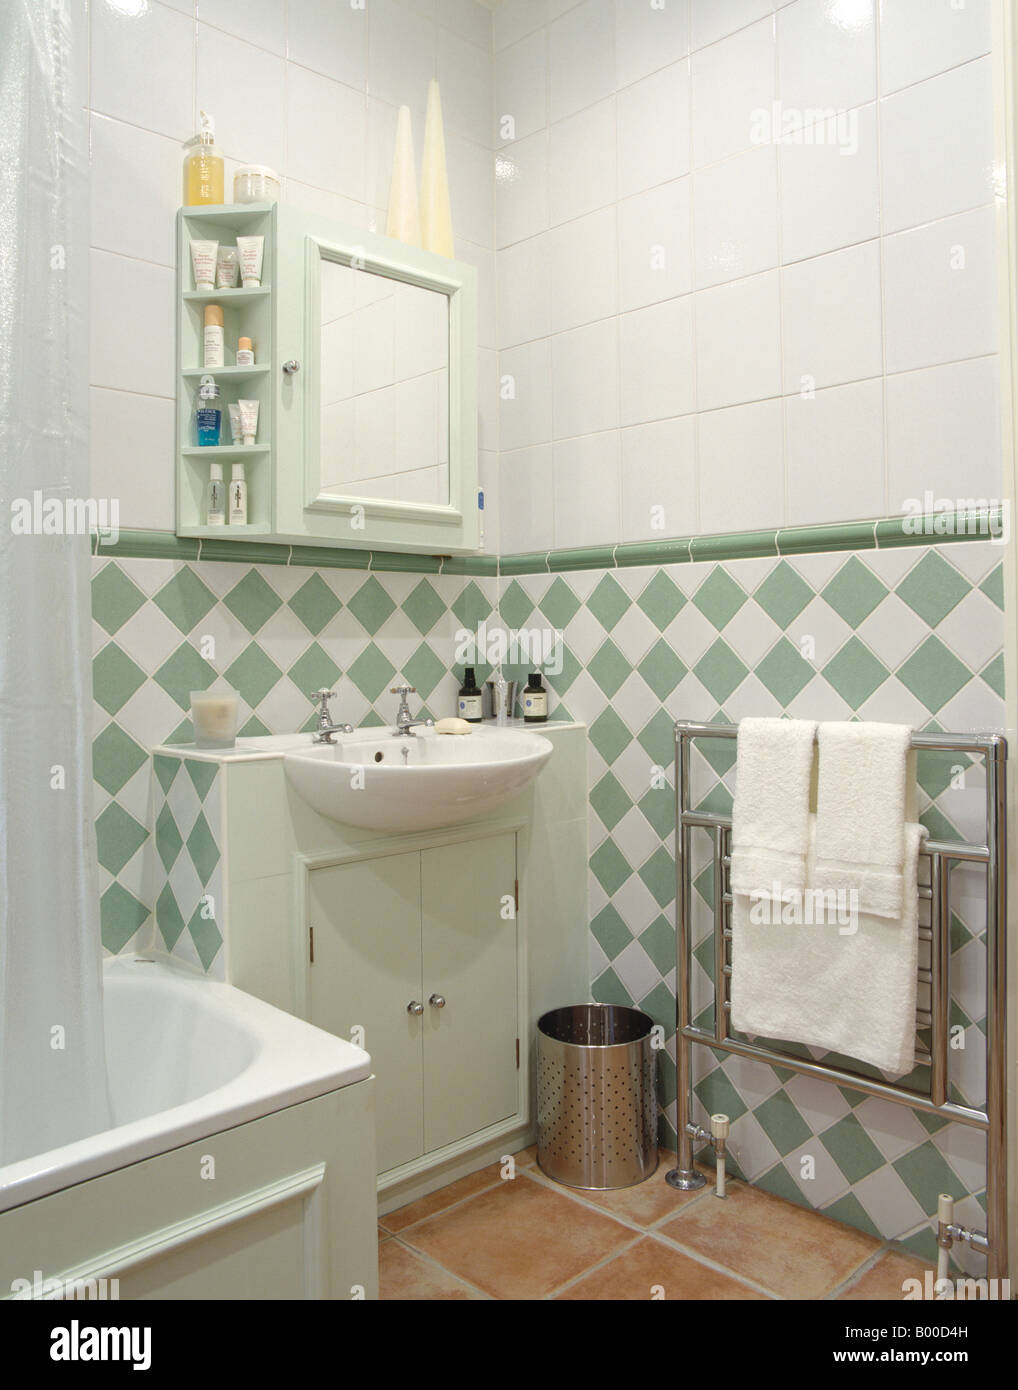 Green and white bathroom - Green And White Tiles Below Dado In Modern White Bathroom With Built In Basin And Chrome Towel Rail